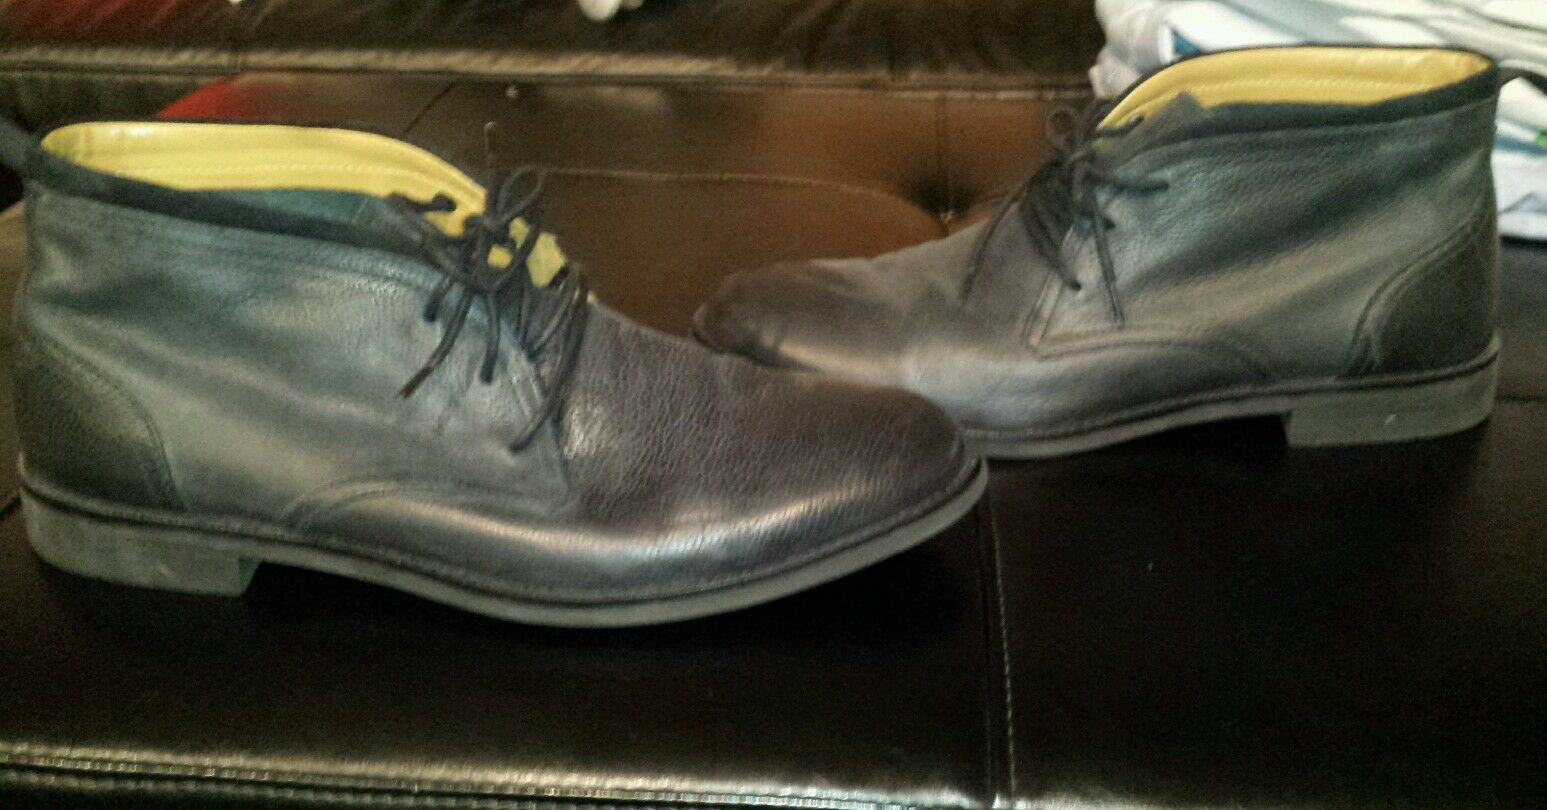 Men's Cole Haan Leather Low Boots Shoes Size 11.5 EUC!